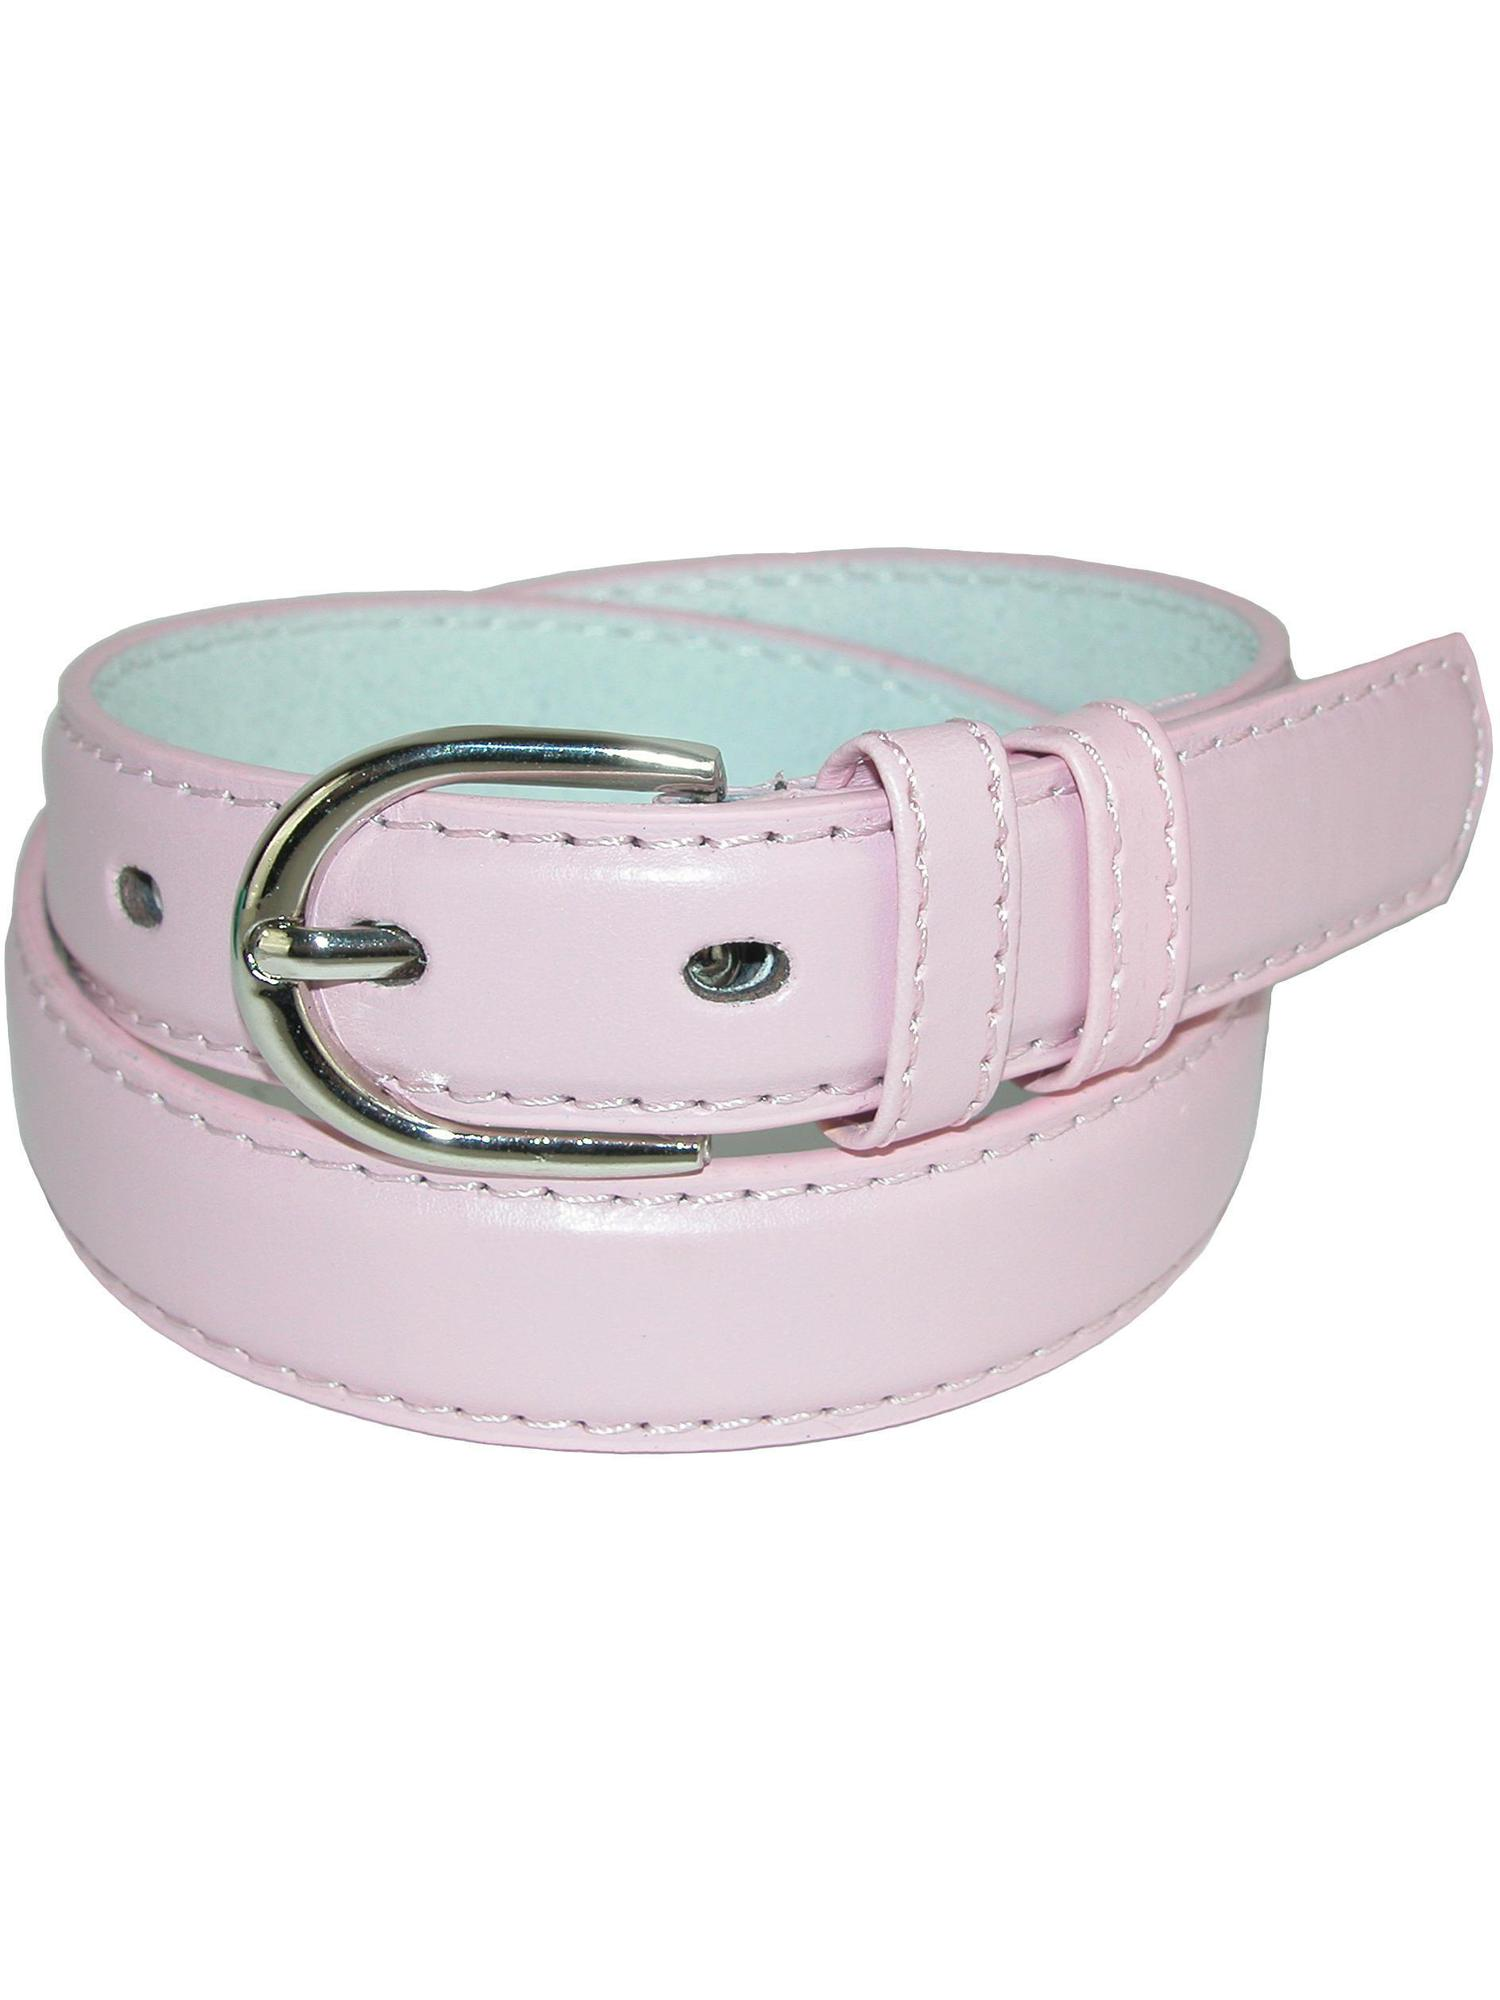 Kid's Leather 1 inch Basic Dress Belt